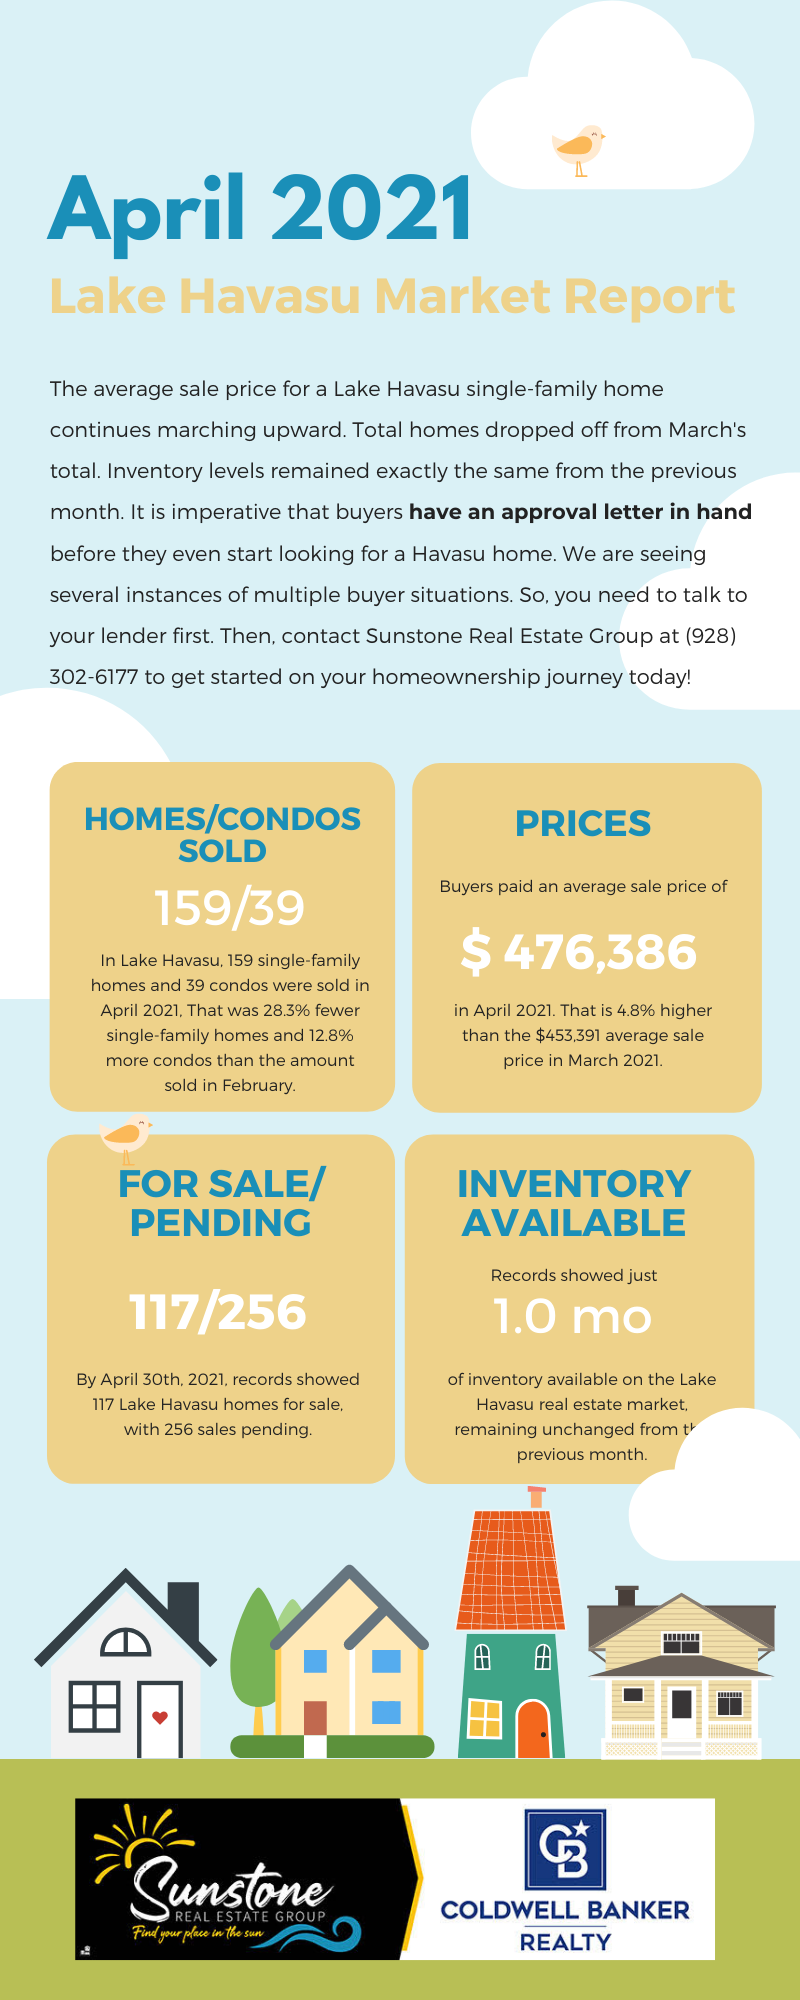 The April 2021 Lake Havasu Market Report showed a decrease in total sales from March 2021, but the average sale price continued its upswing. Inventory remained exactly the same.